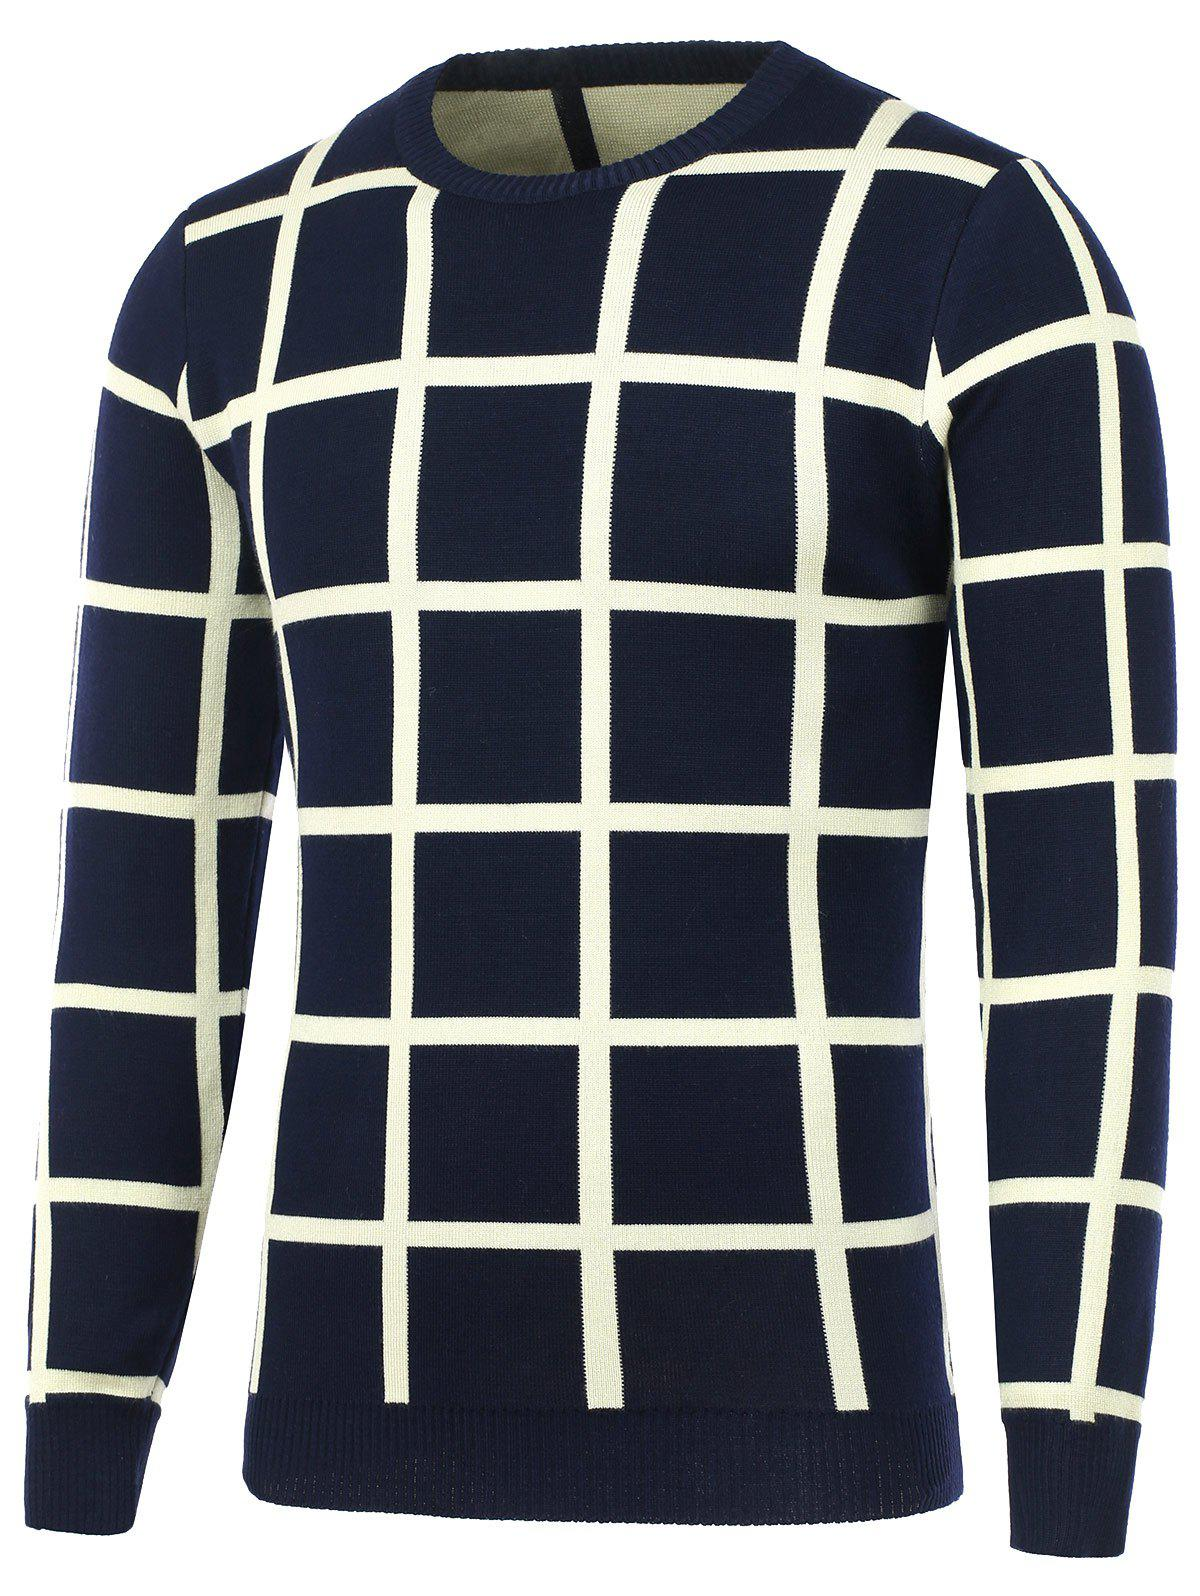 Unique Knitted Crew Neck Grid Sweater